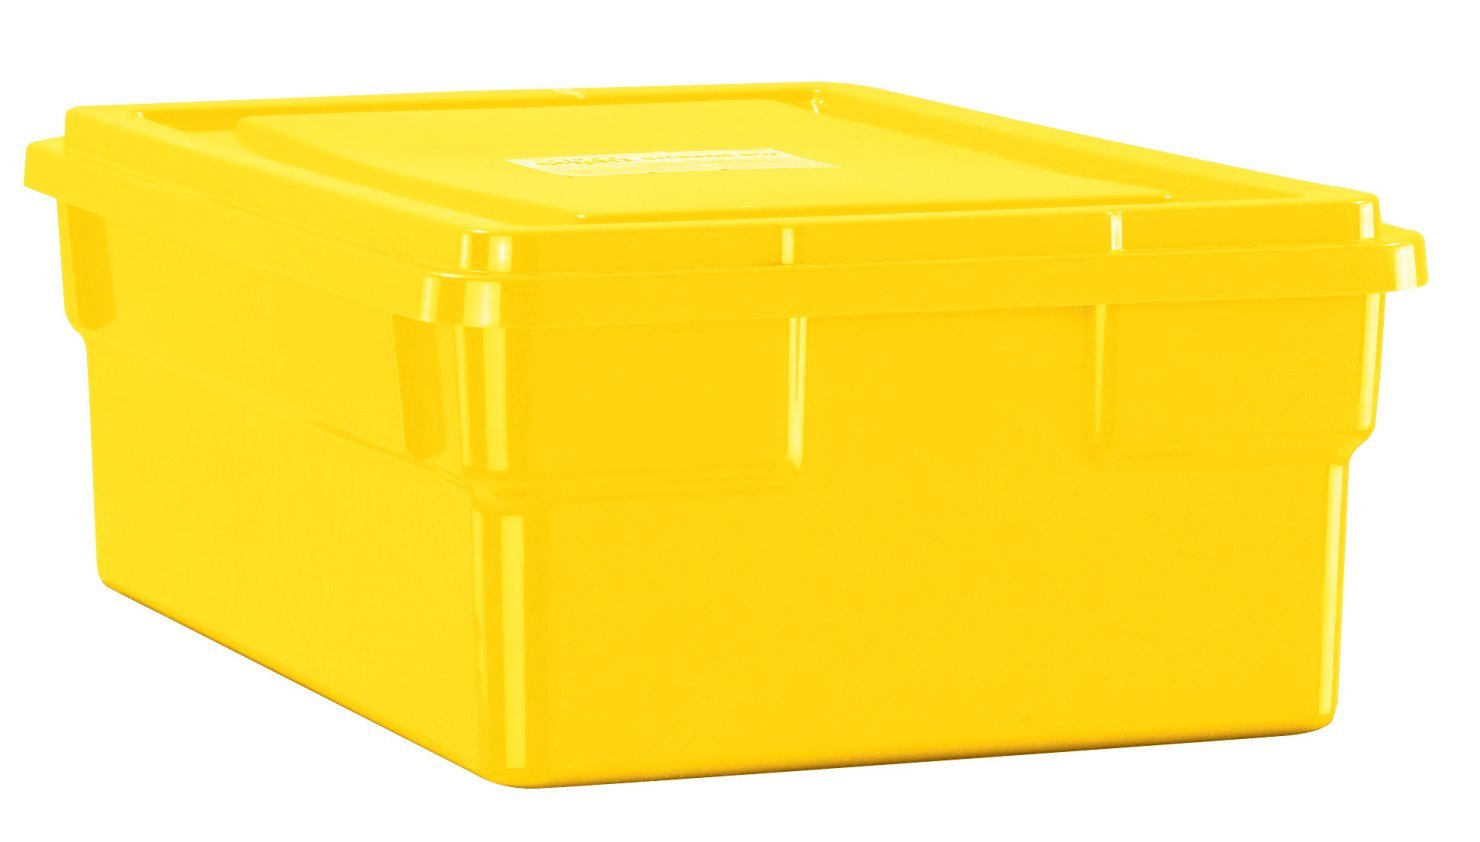 Childcraft Storage Box with Lid - 16 x 11 x 6 inches - Yellow Early Childhood Development Products Amazon.com Industrial u0026 Scientific  sc 1 st  Amazon.com & Childcraft Storage Box with Lid - 16 x 11 x 6 inches - Yellow: Early ...